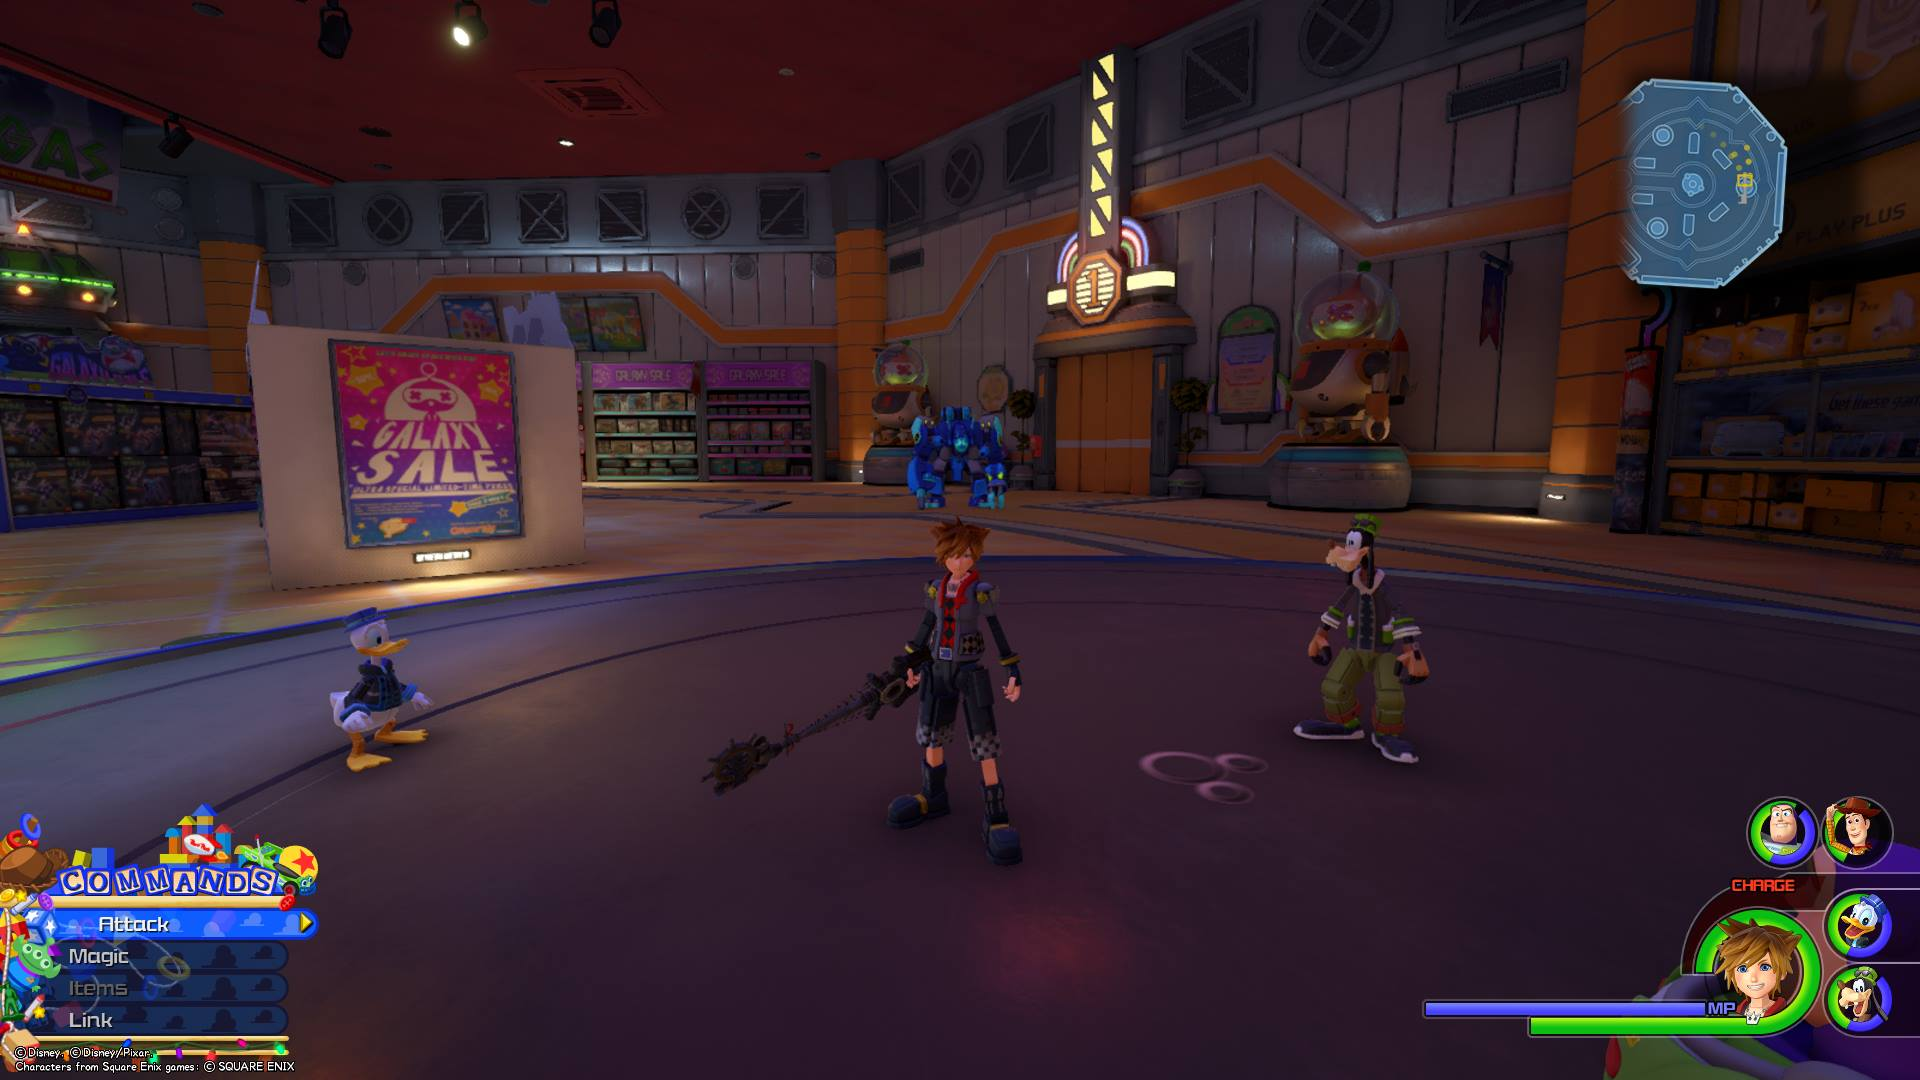 Emblem 7 - All Lucky Emblems in Toy Box Kingdom Hearts 3